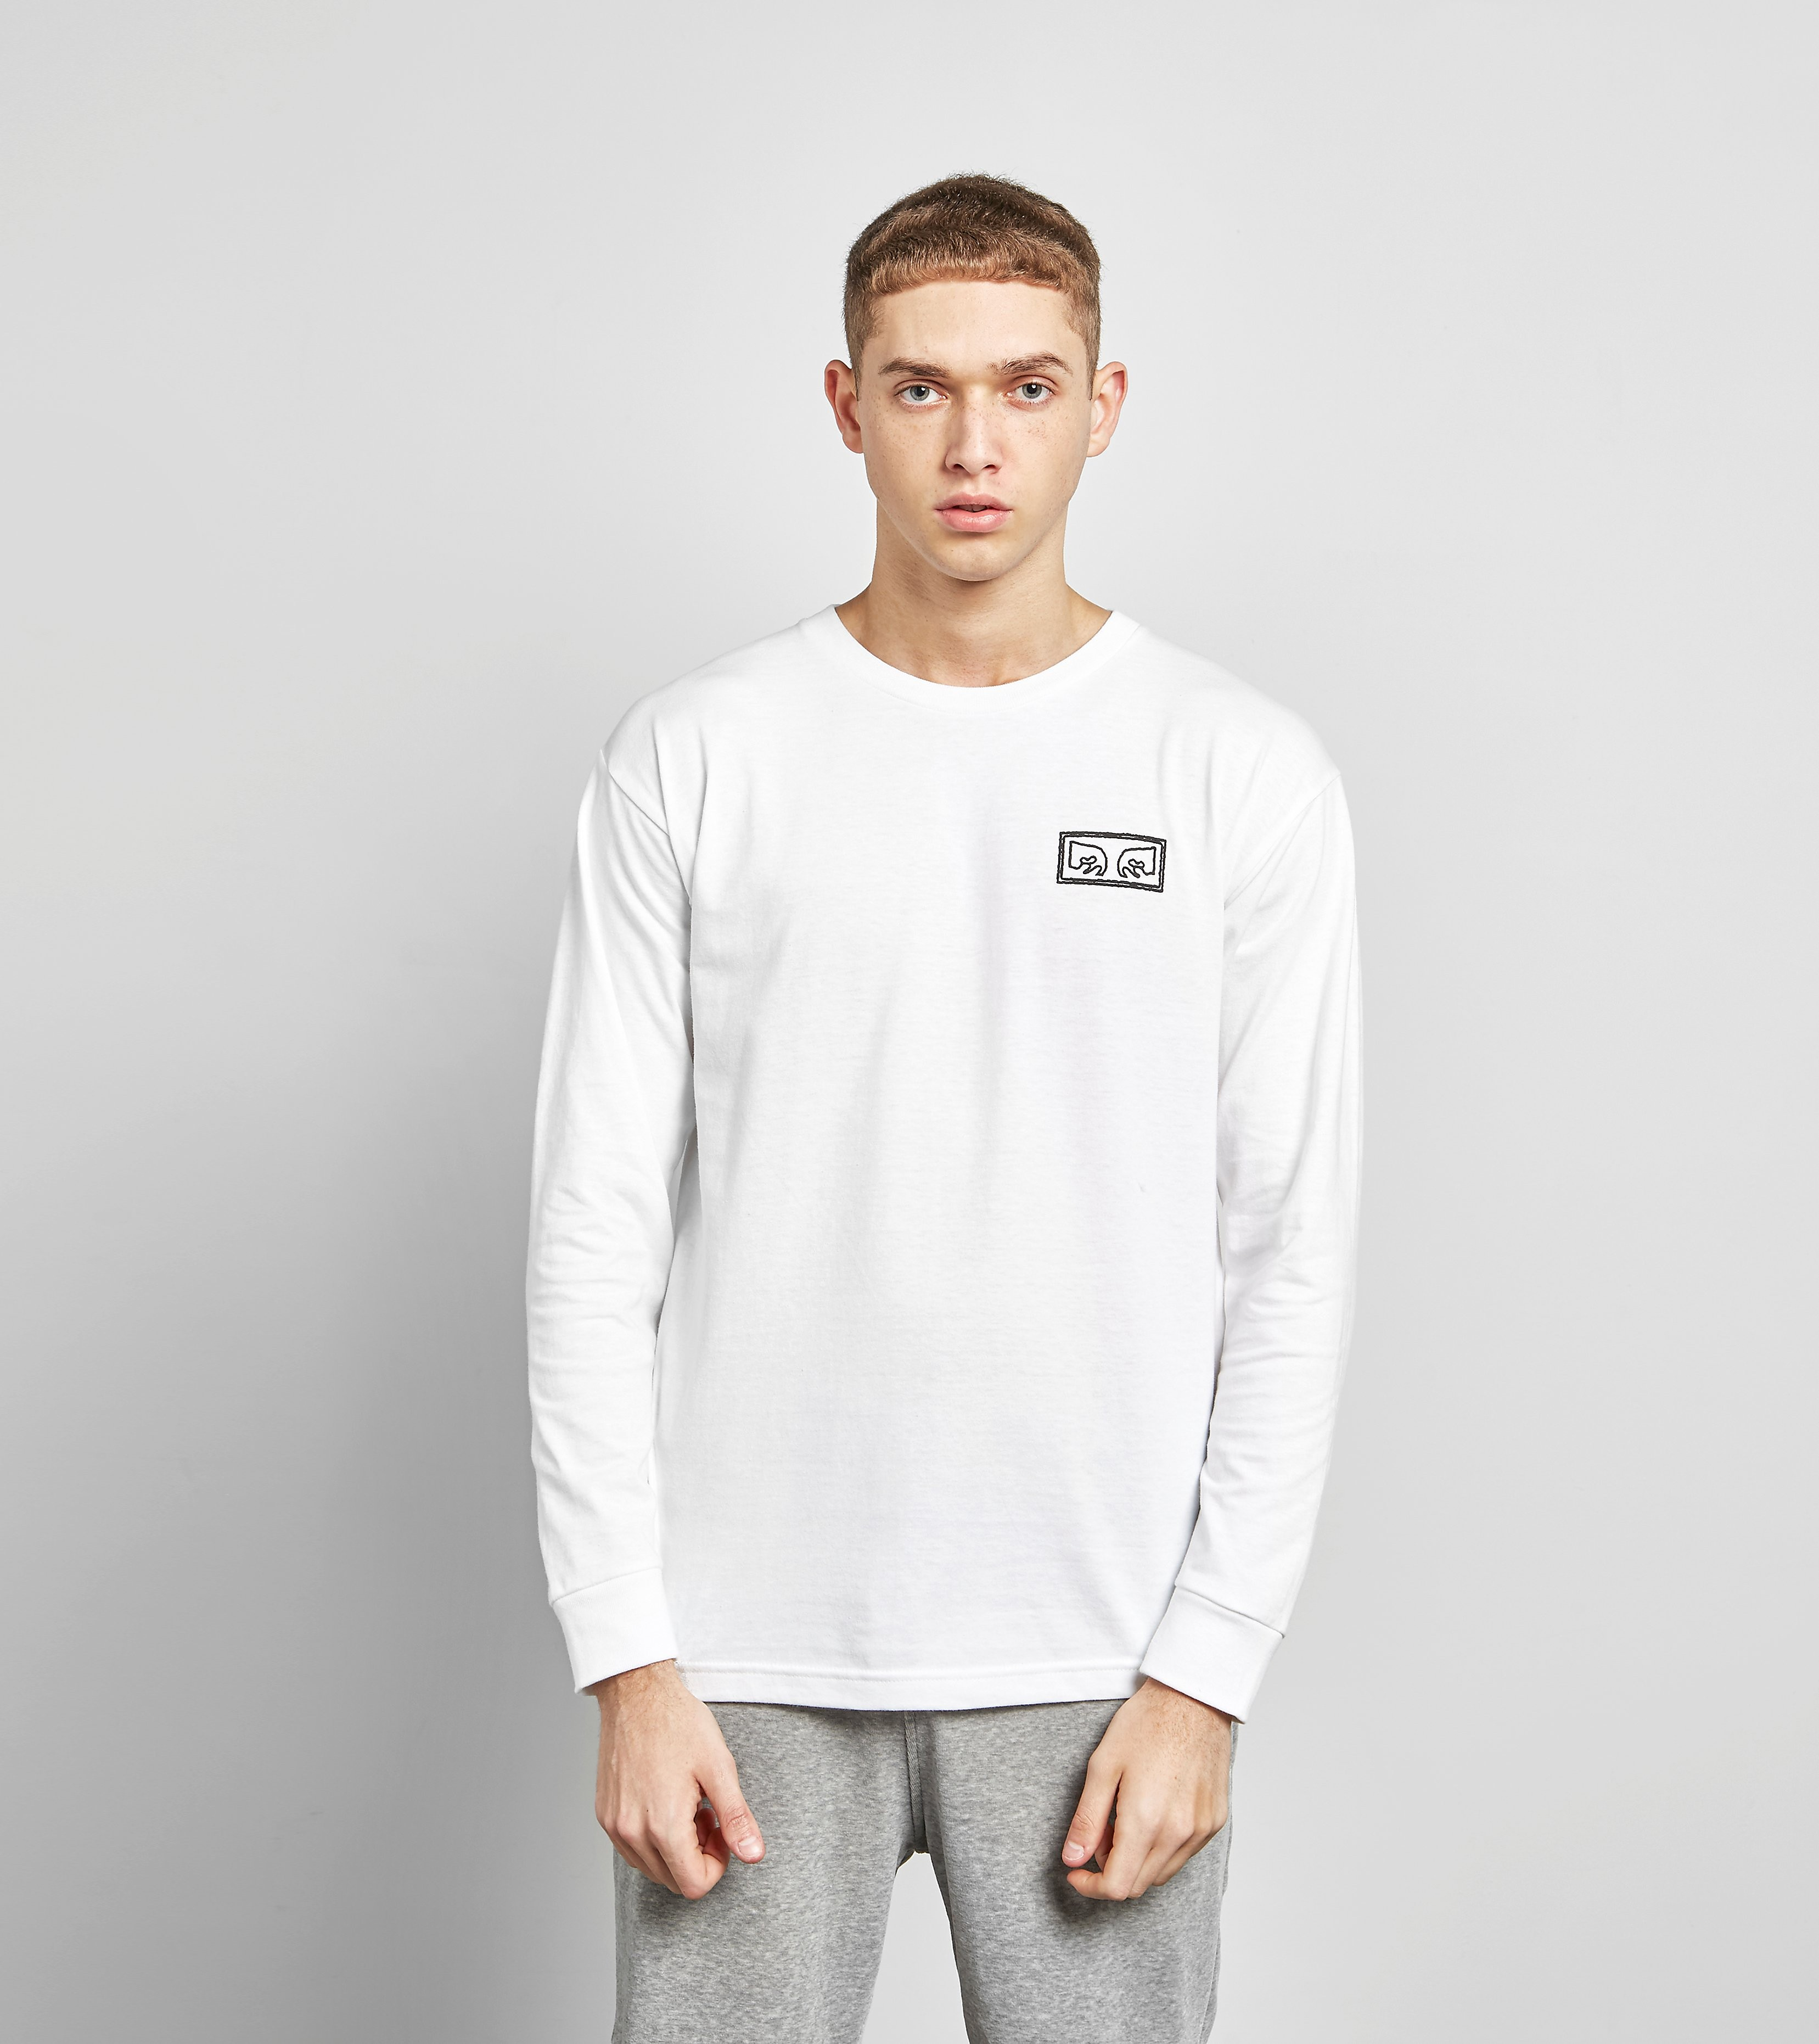 Obey Long-Sleeved Vibes T-Shirt